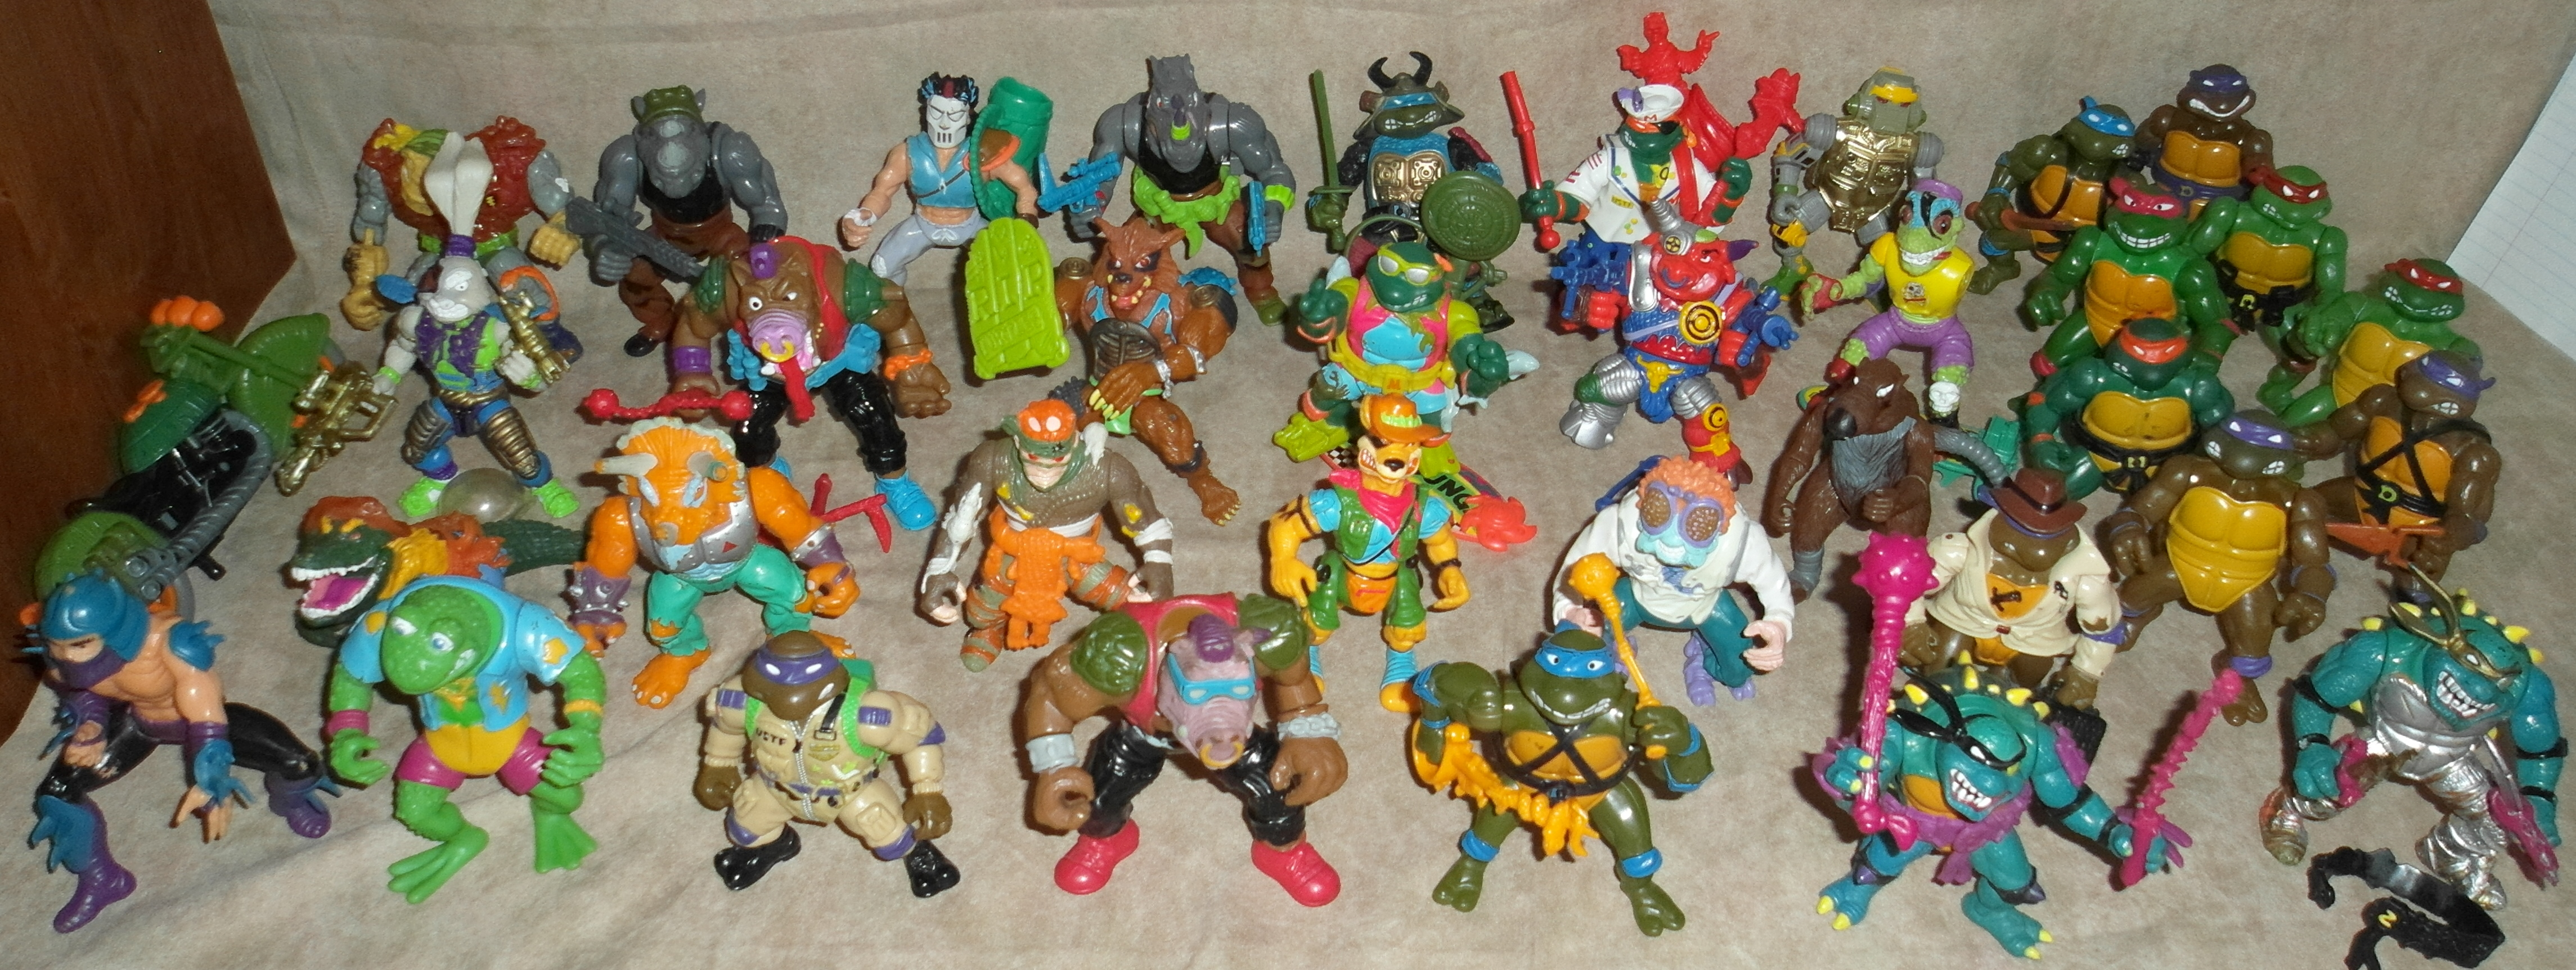 Ninja Turtles Fighting Figures 01